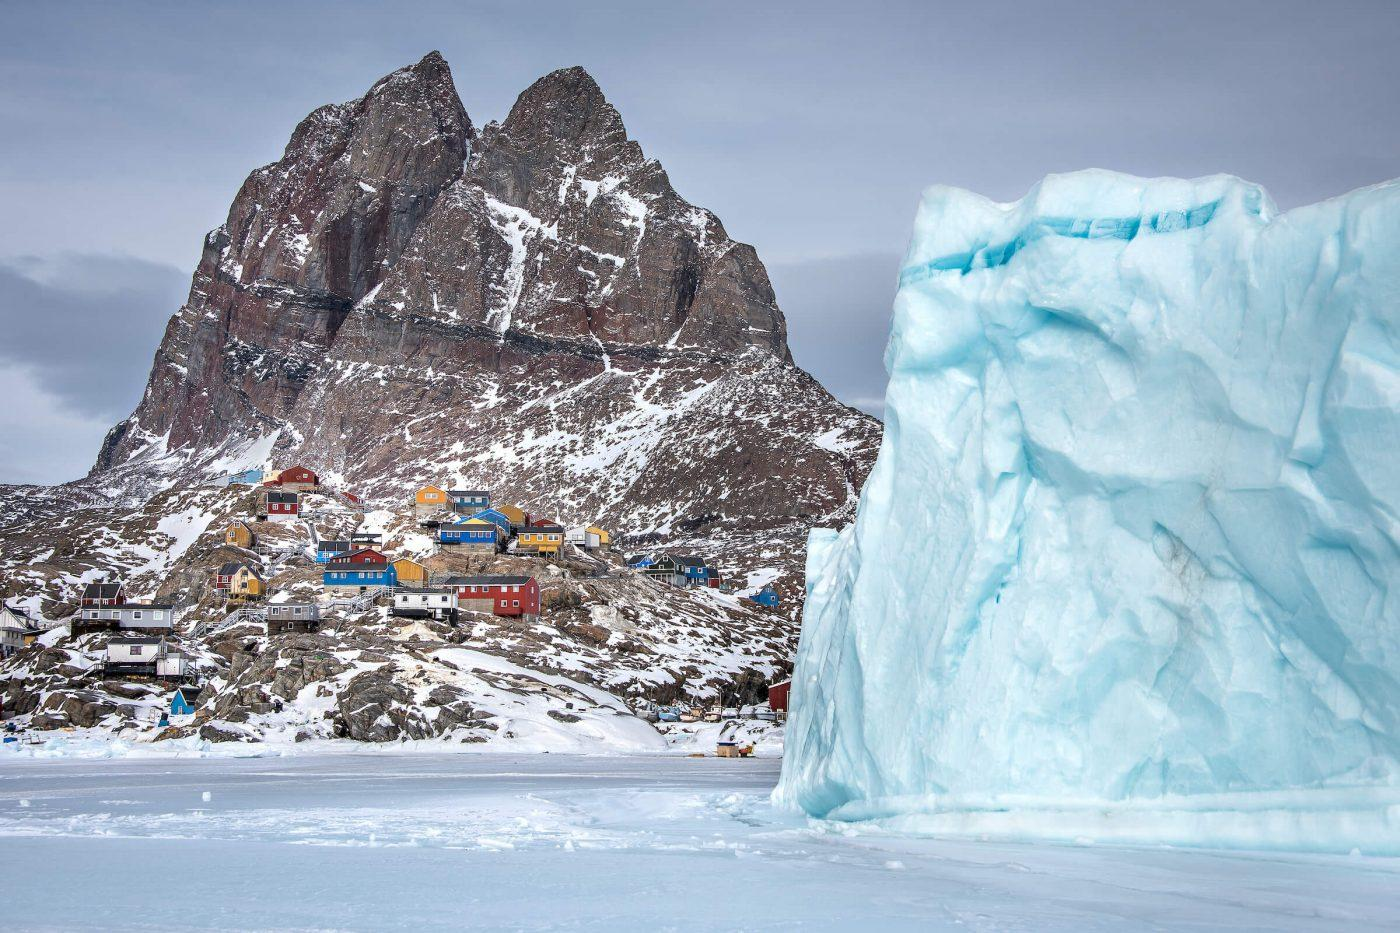 A winter view of the heart shaped mountain and the town of Uummannaq in North Greenland. Photo by Marcela Cardenas.